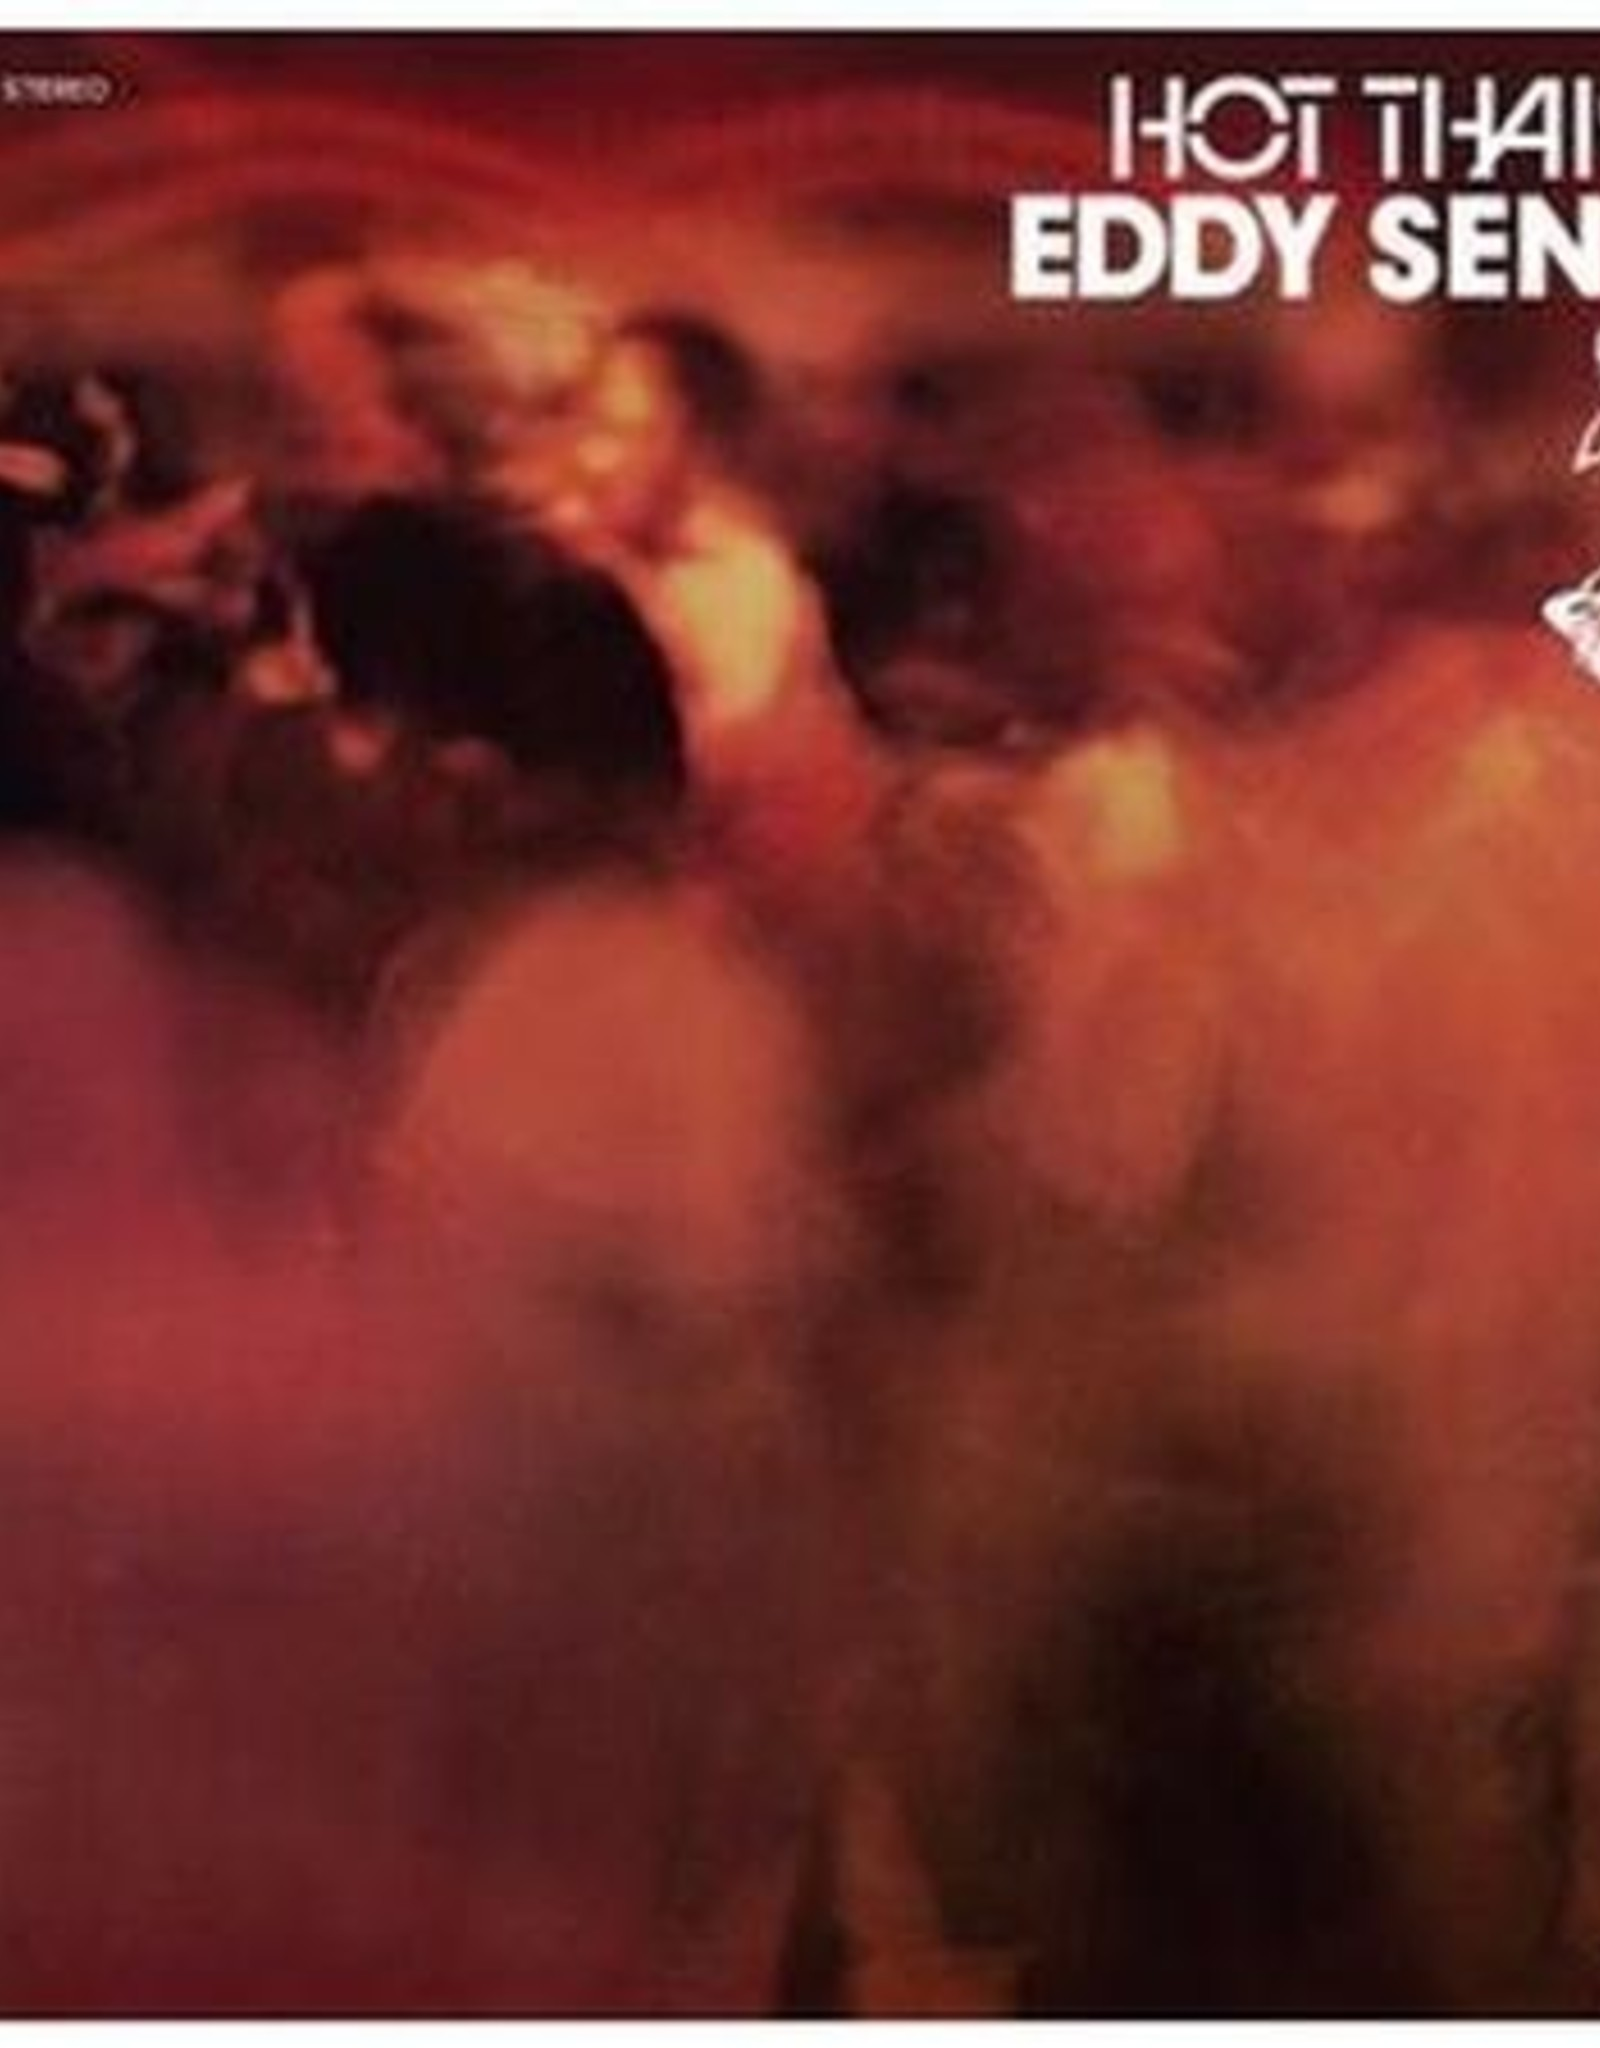 Eddy Senay - Hot Thang! (Gold Colored Vinyl)